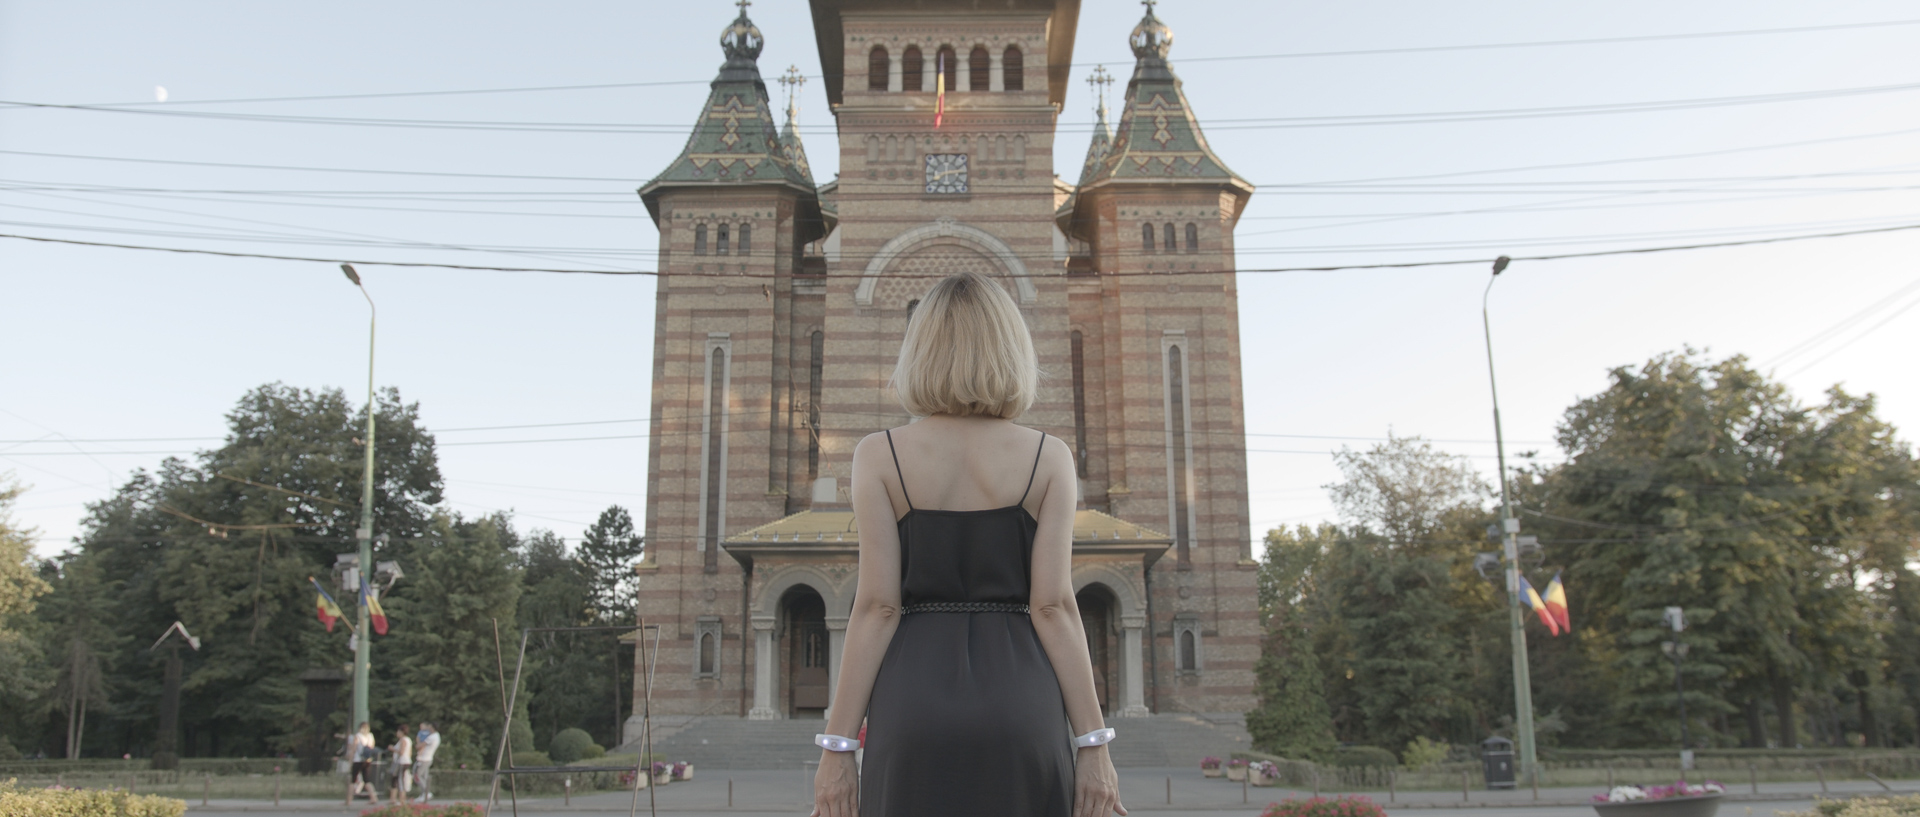 iulius town timisoara guinness world records commercial by popotam productions video agency before color grading